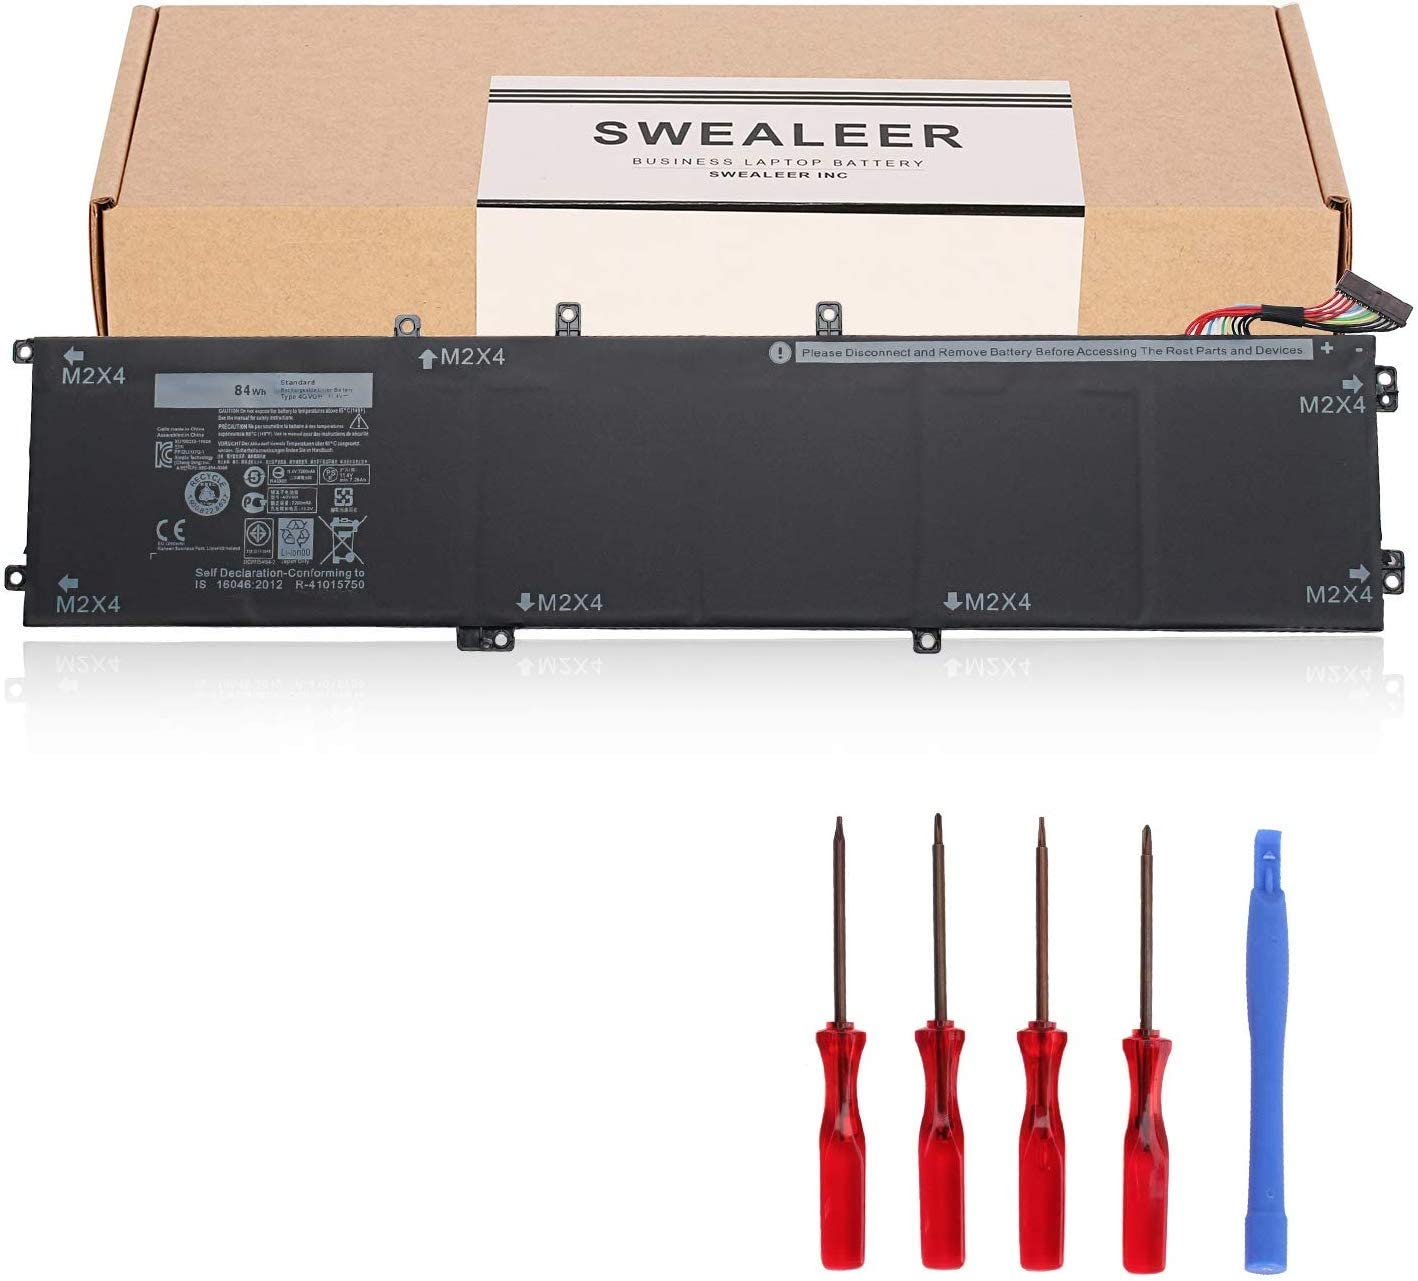 SWEALEER 4GVGH Battery Compatible with Dell XPS 15 9550 Precision 5510 Replacement for 1P6KD 84Wh High Capacity Laptop Batteries [New Li-ion 6-Cell 11.4V 4gvgh]